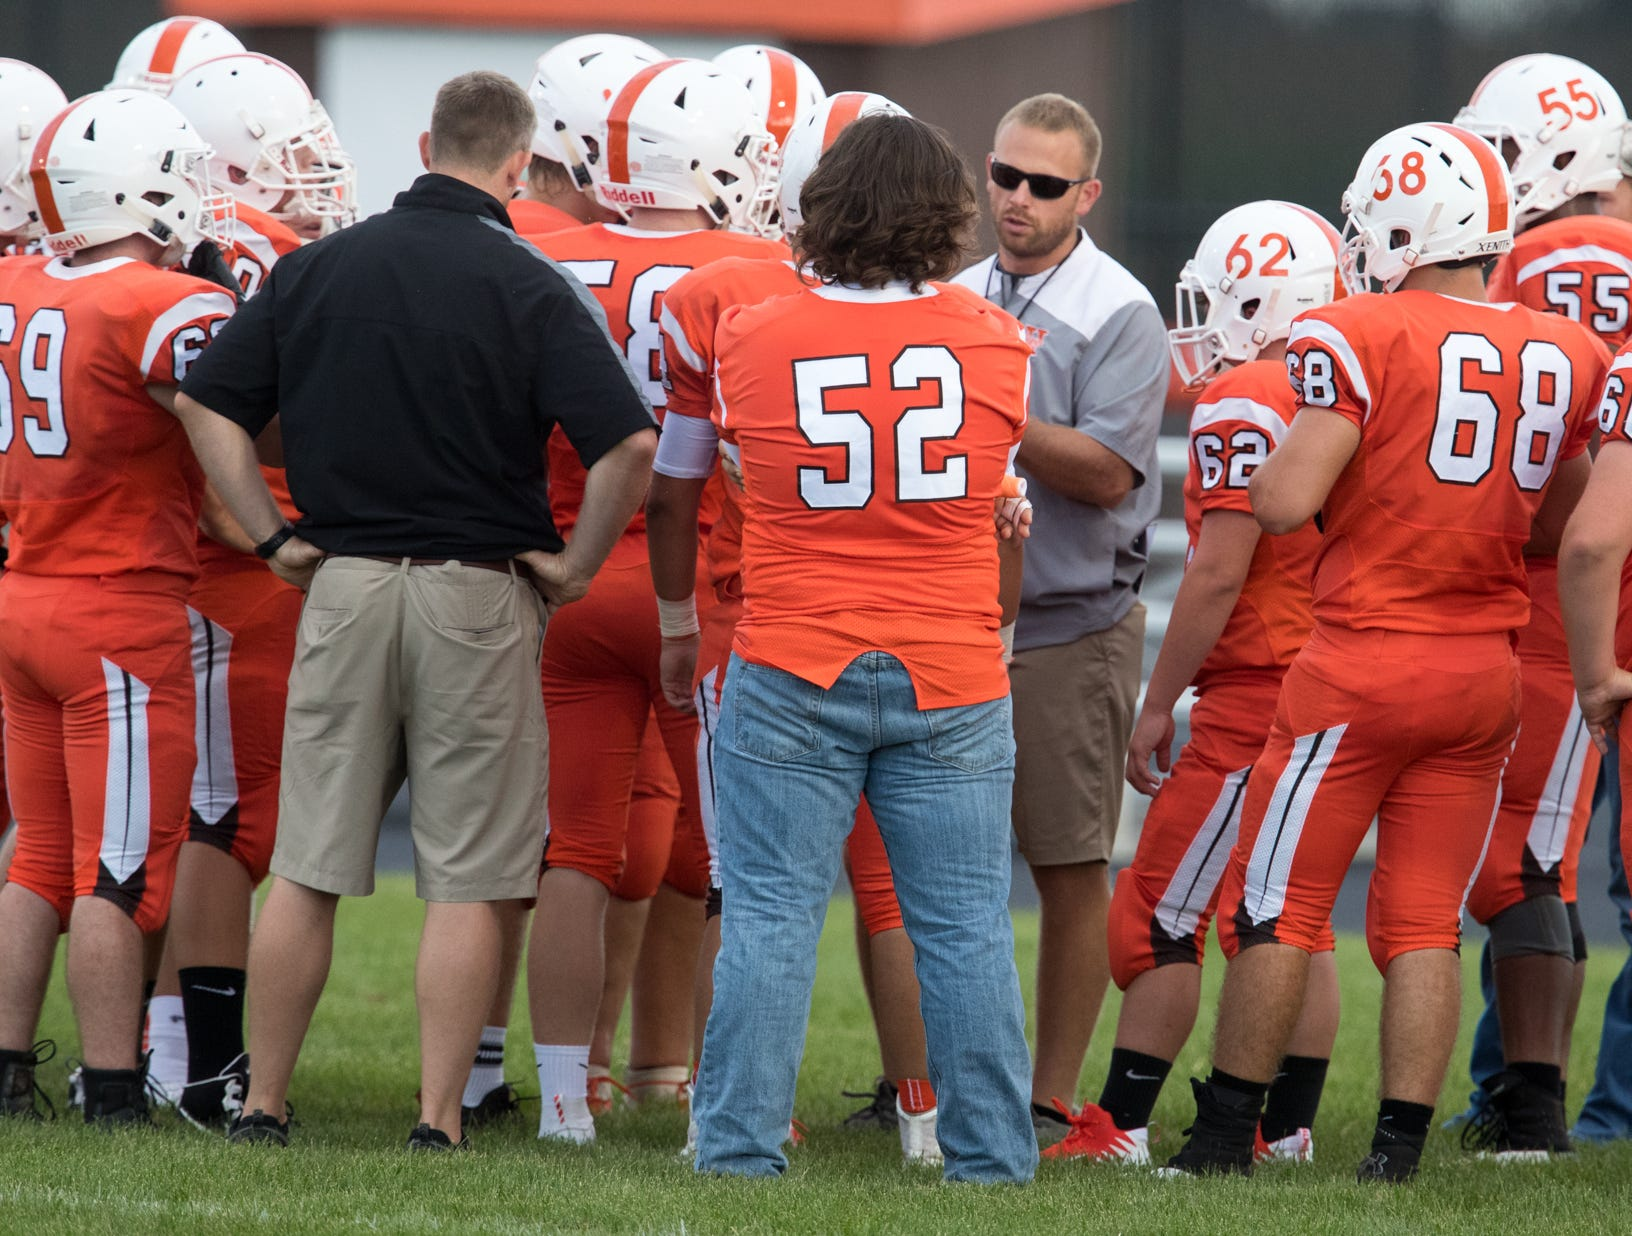 Jon Kirschner (in sunglasses), talks with staff and players from Hamilton Heights High School, before game action against Mount Vernon High School, won by MVHS, 43-14, Arcadia, Friday, Aug. 17, 2018. This game is the first for HHHS head coach Jon Kirschner, who faced his father Mike Kirschner, a veteran and champion coach in his first season at MVHS.